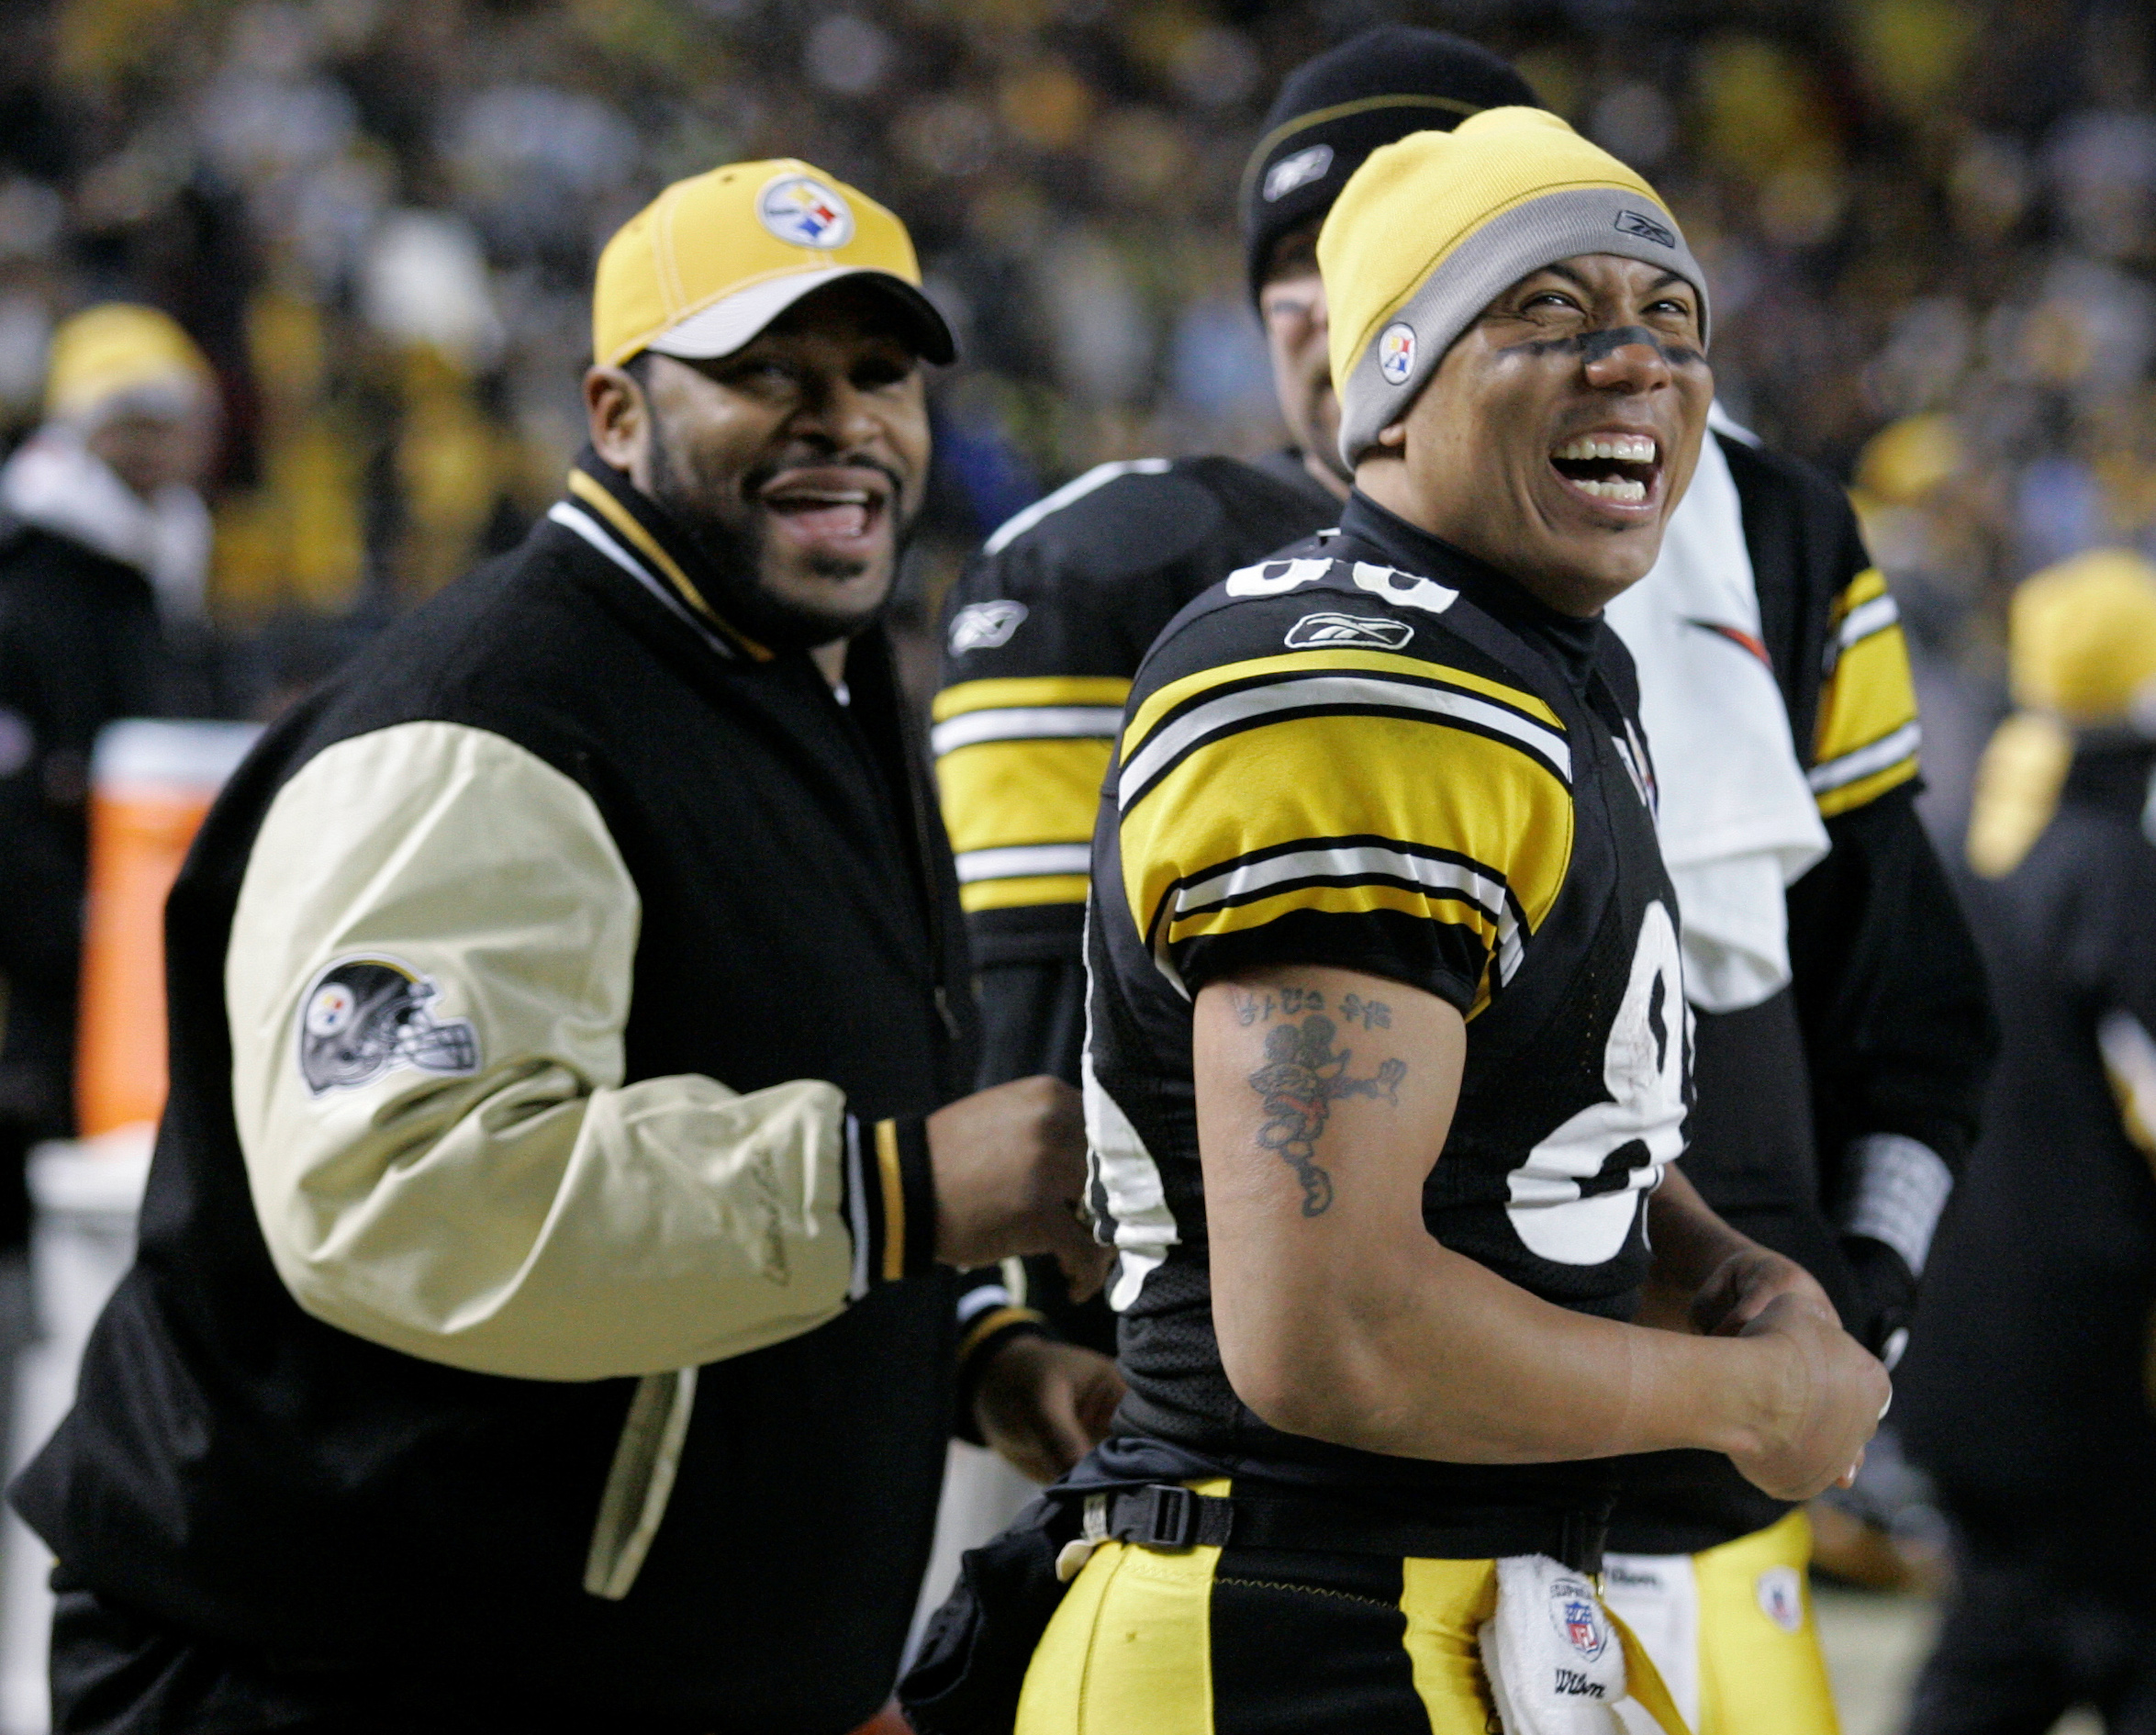 FILE - In this Jan. 11, 2009, file photo, Pittsburgh Steelers receiver Hines Ward, right, and retired Steelers running back Jerome Bettis smiles during an NFL divisional playoff football game against the San Diego Chargers in Pittsburgh. Bettis served as